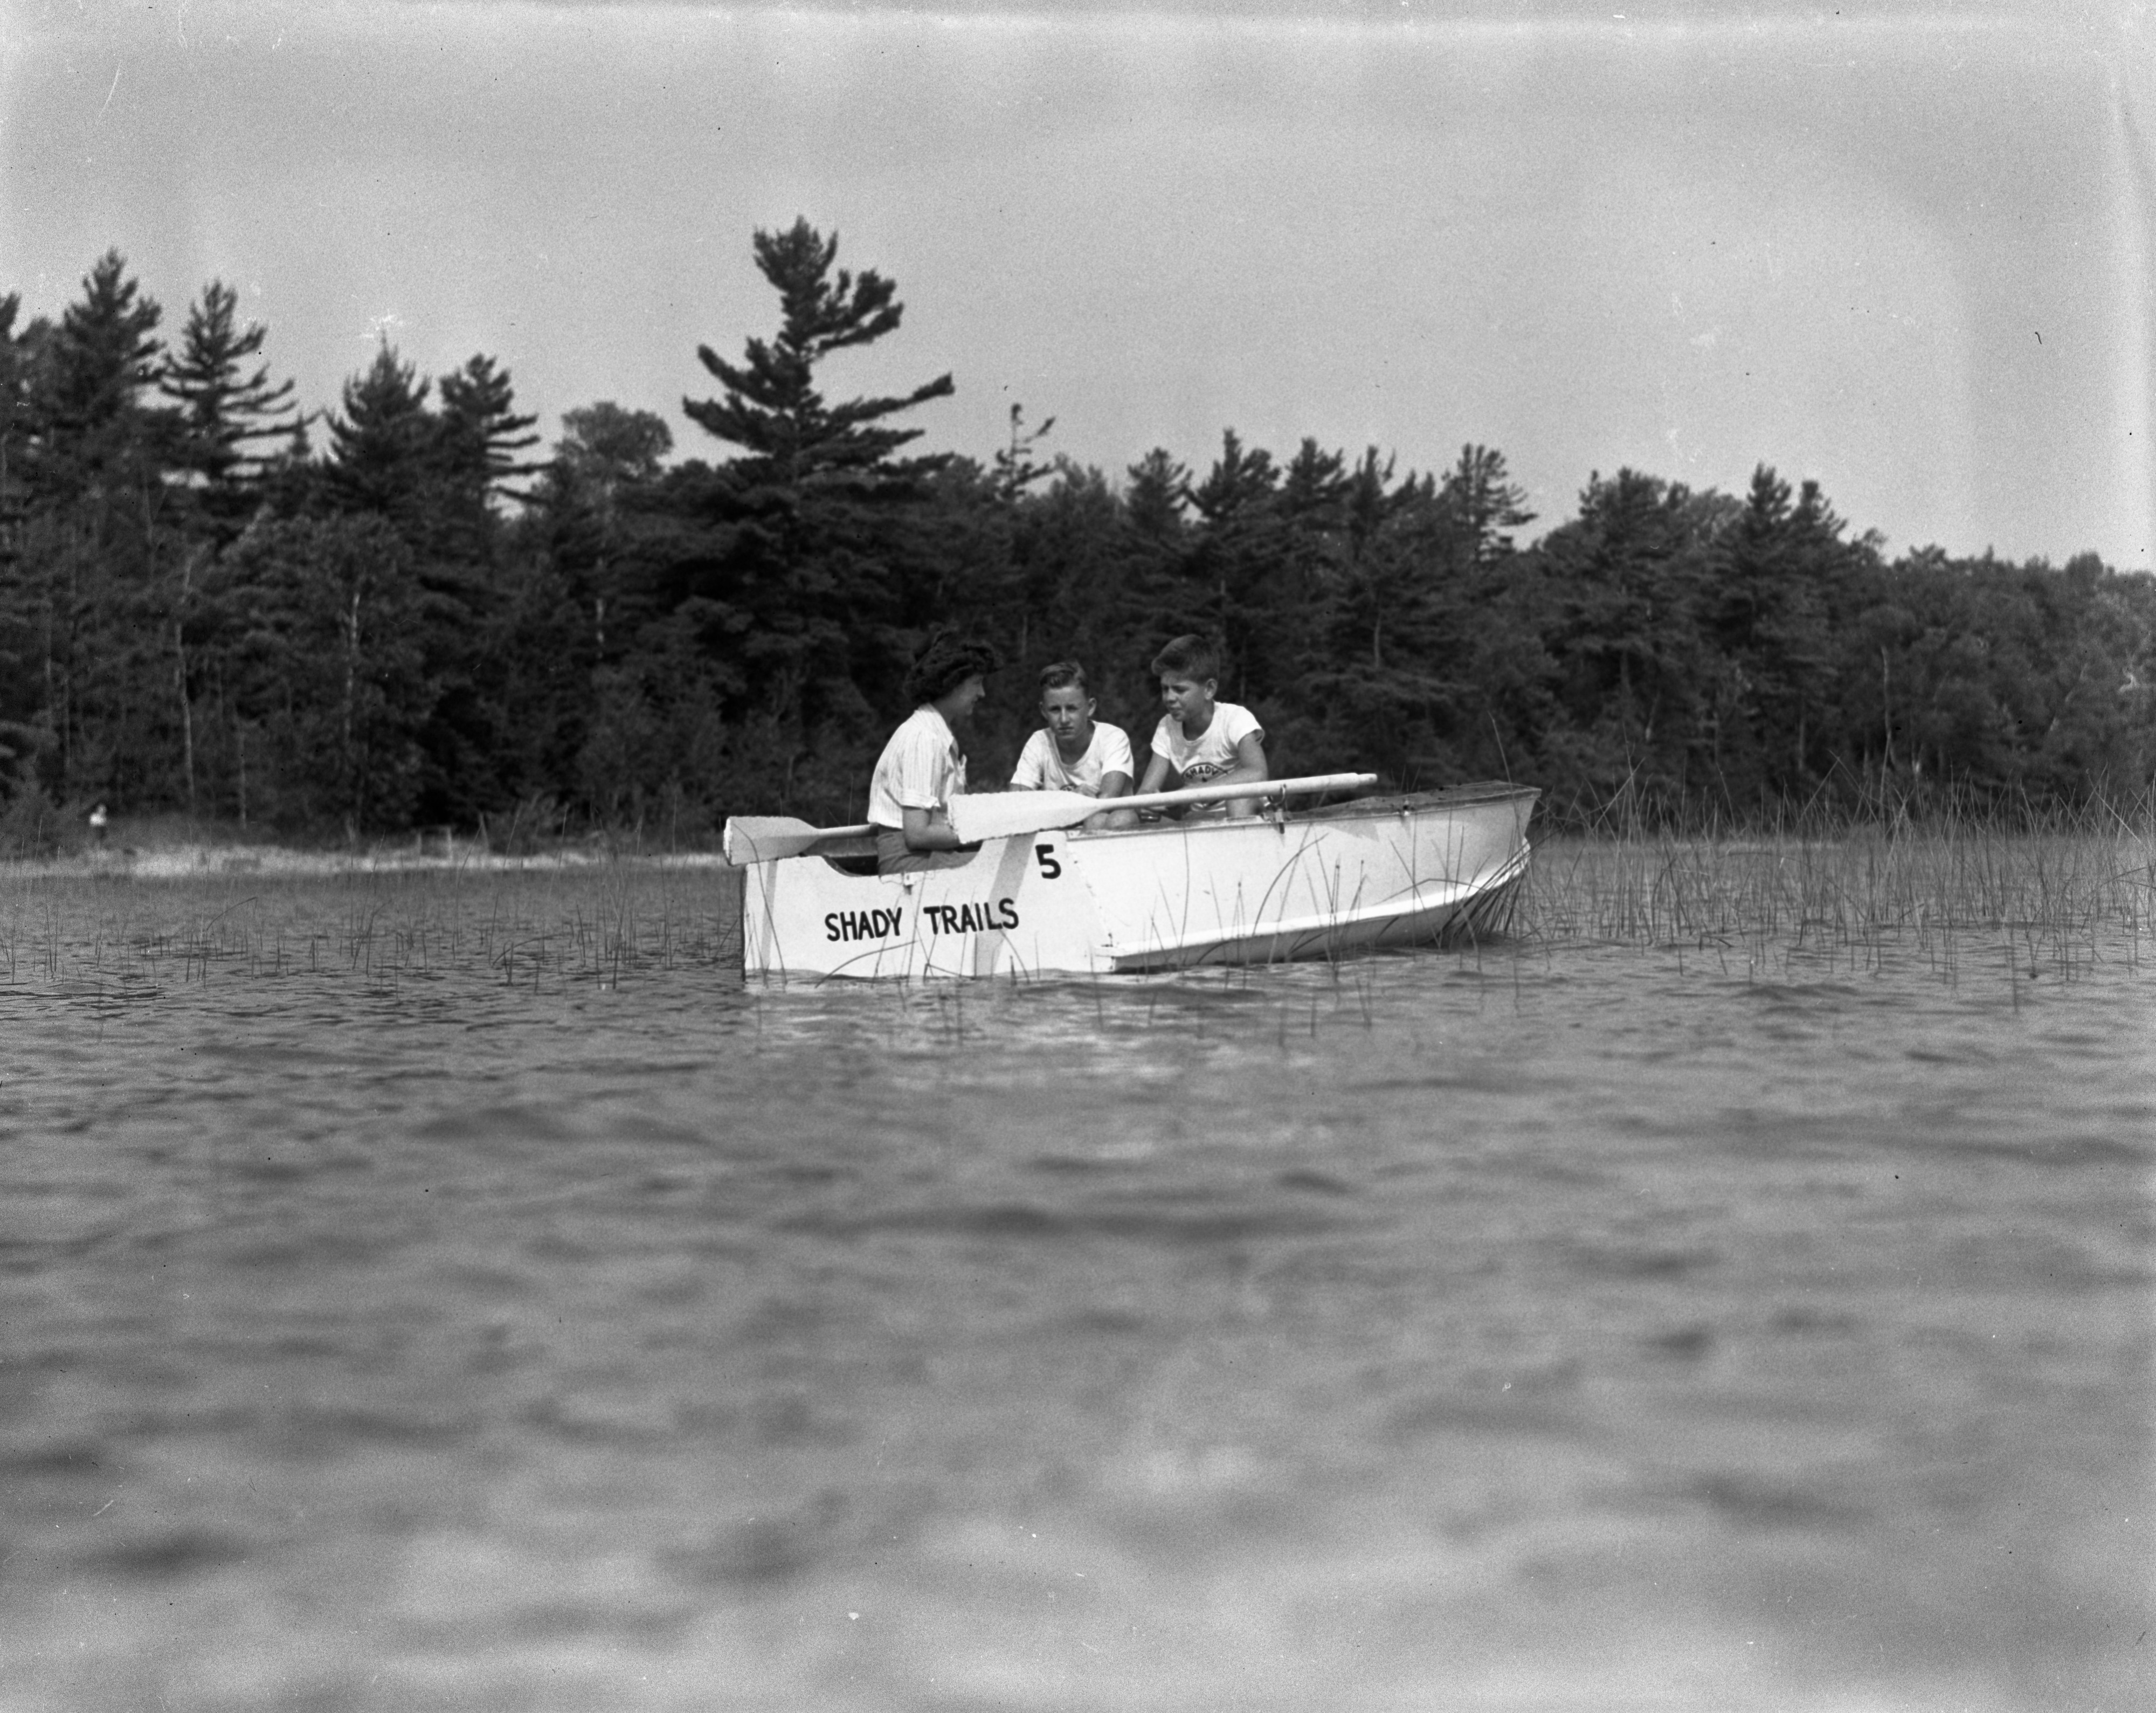 In the Shady Hills Boat at Shady Trails Speech Improvement Camp, Summer 1944 image